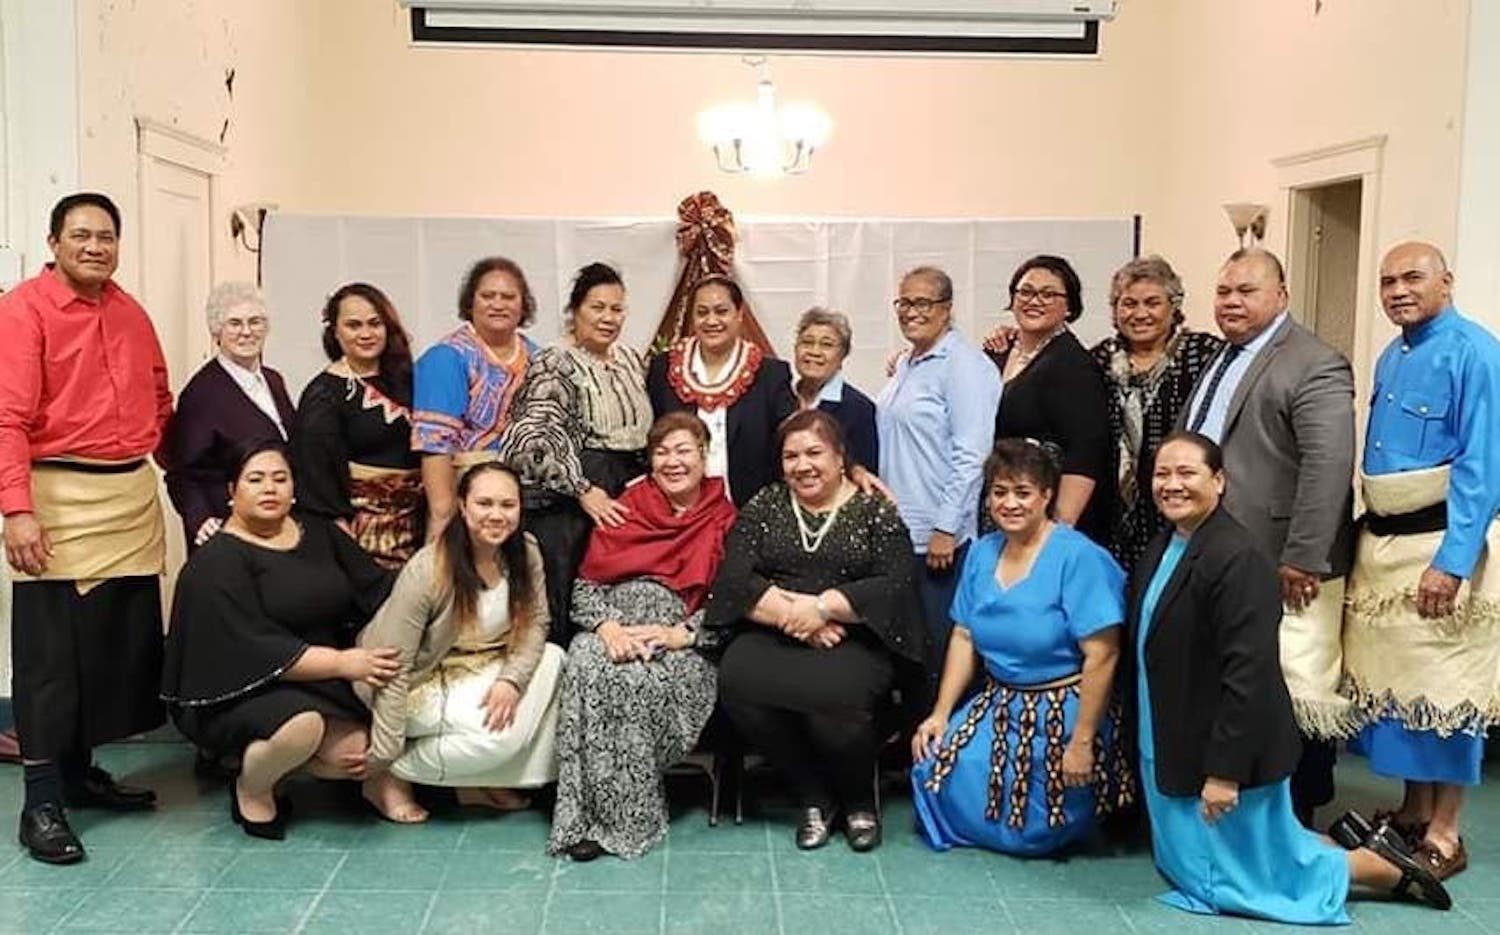 Sister Senitila (center) with family members and some of the Sisters who gathered in the parish hall for the celebration after the Mass.